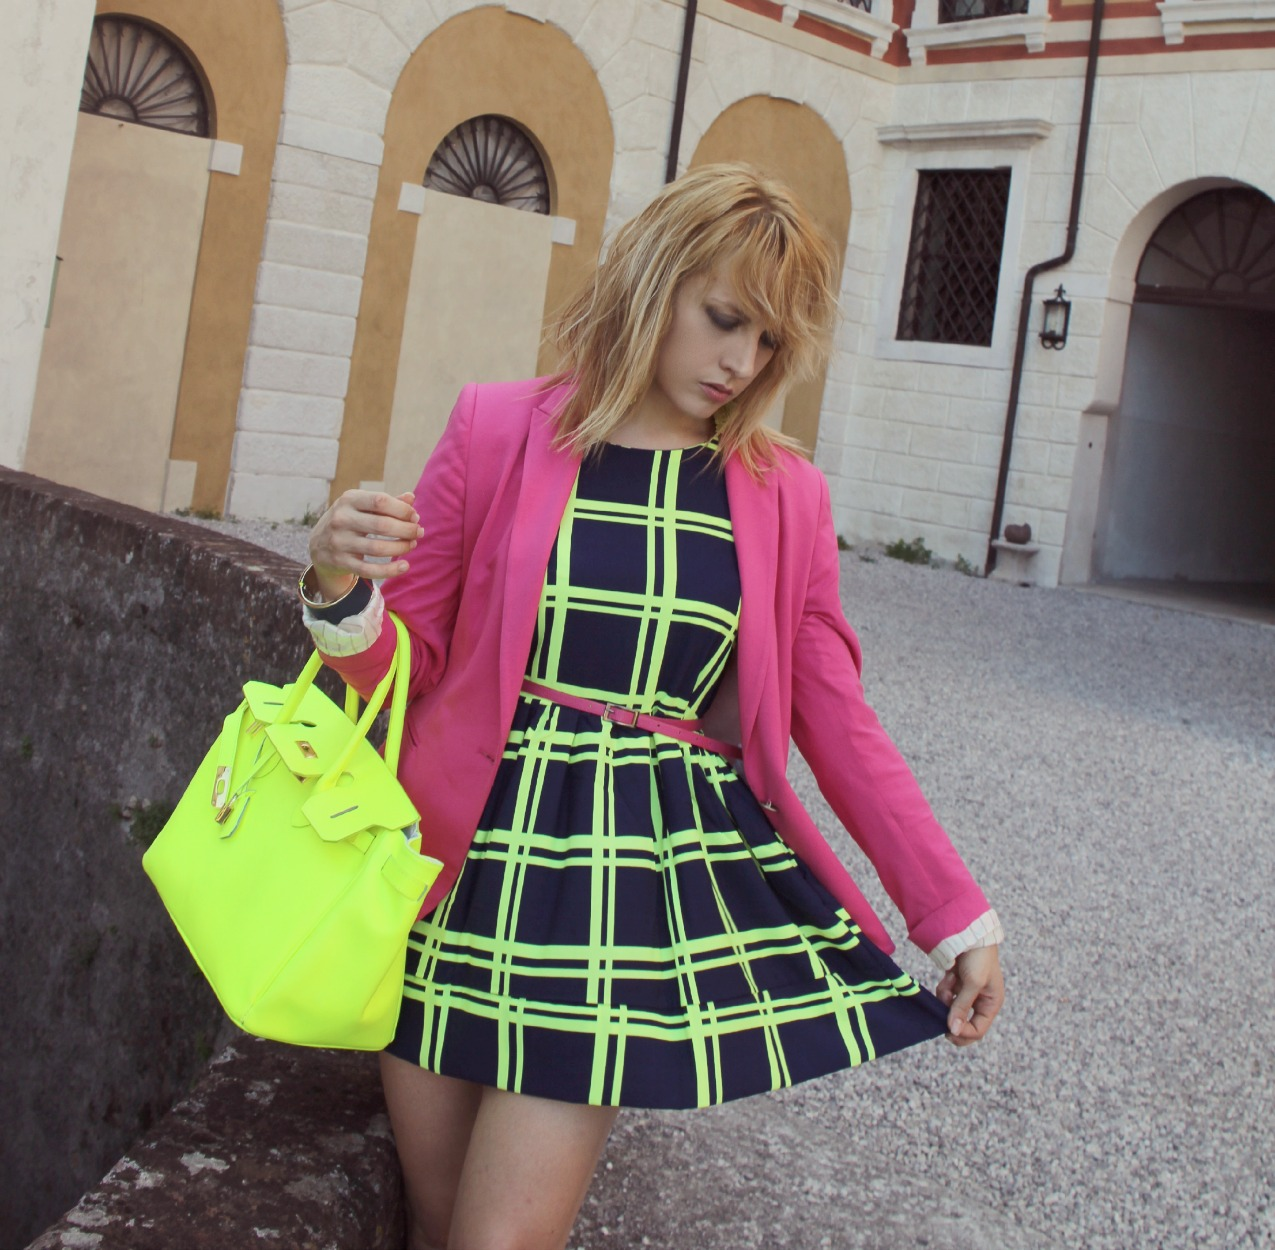 alessia milanese, thechilicool, fashion blog, fashion blogger, efoxcity, outfit, blog di moda italiani